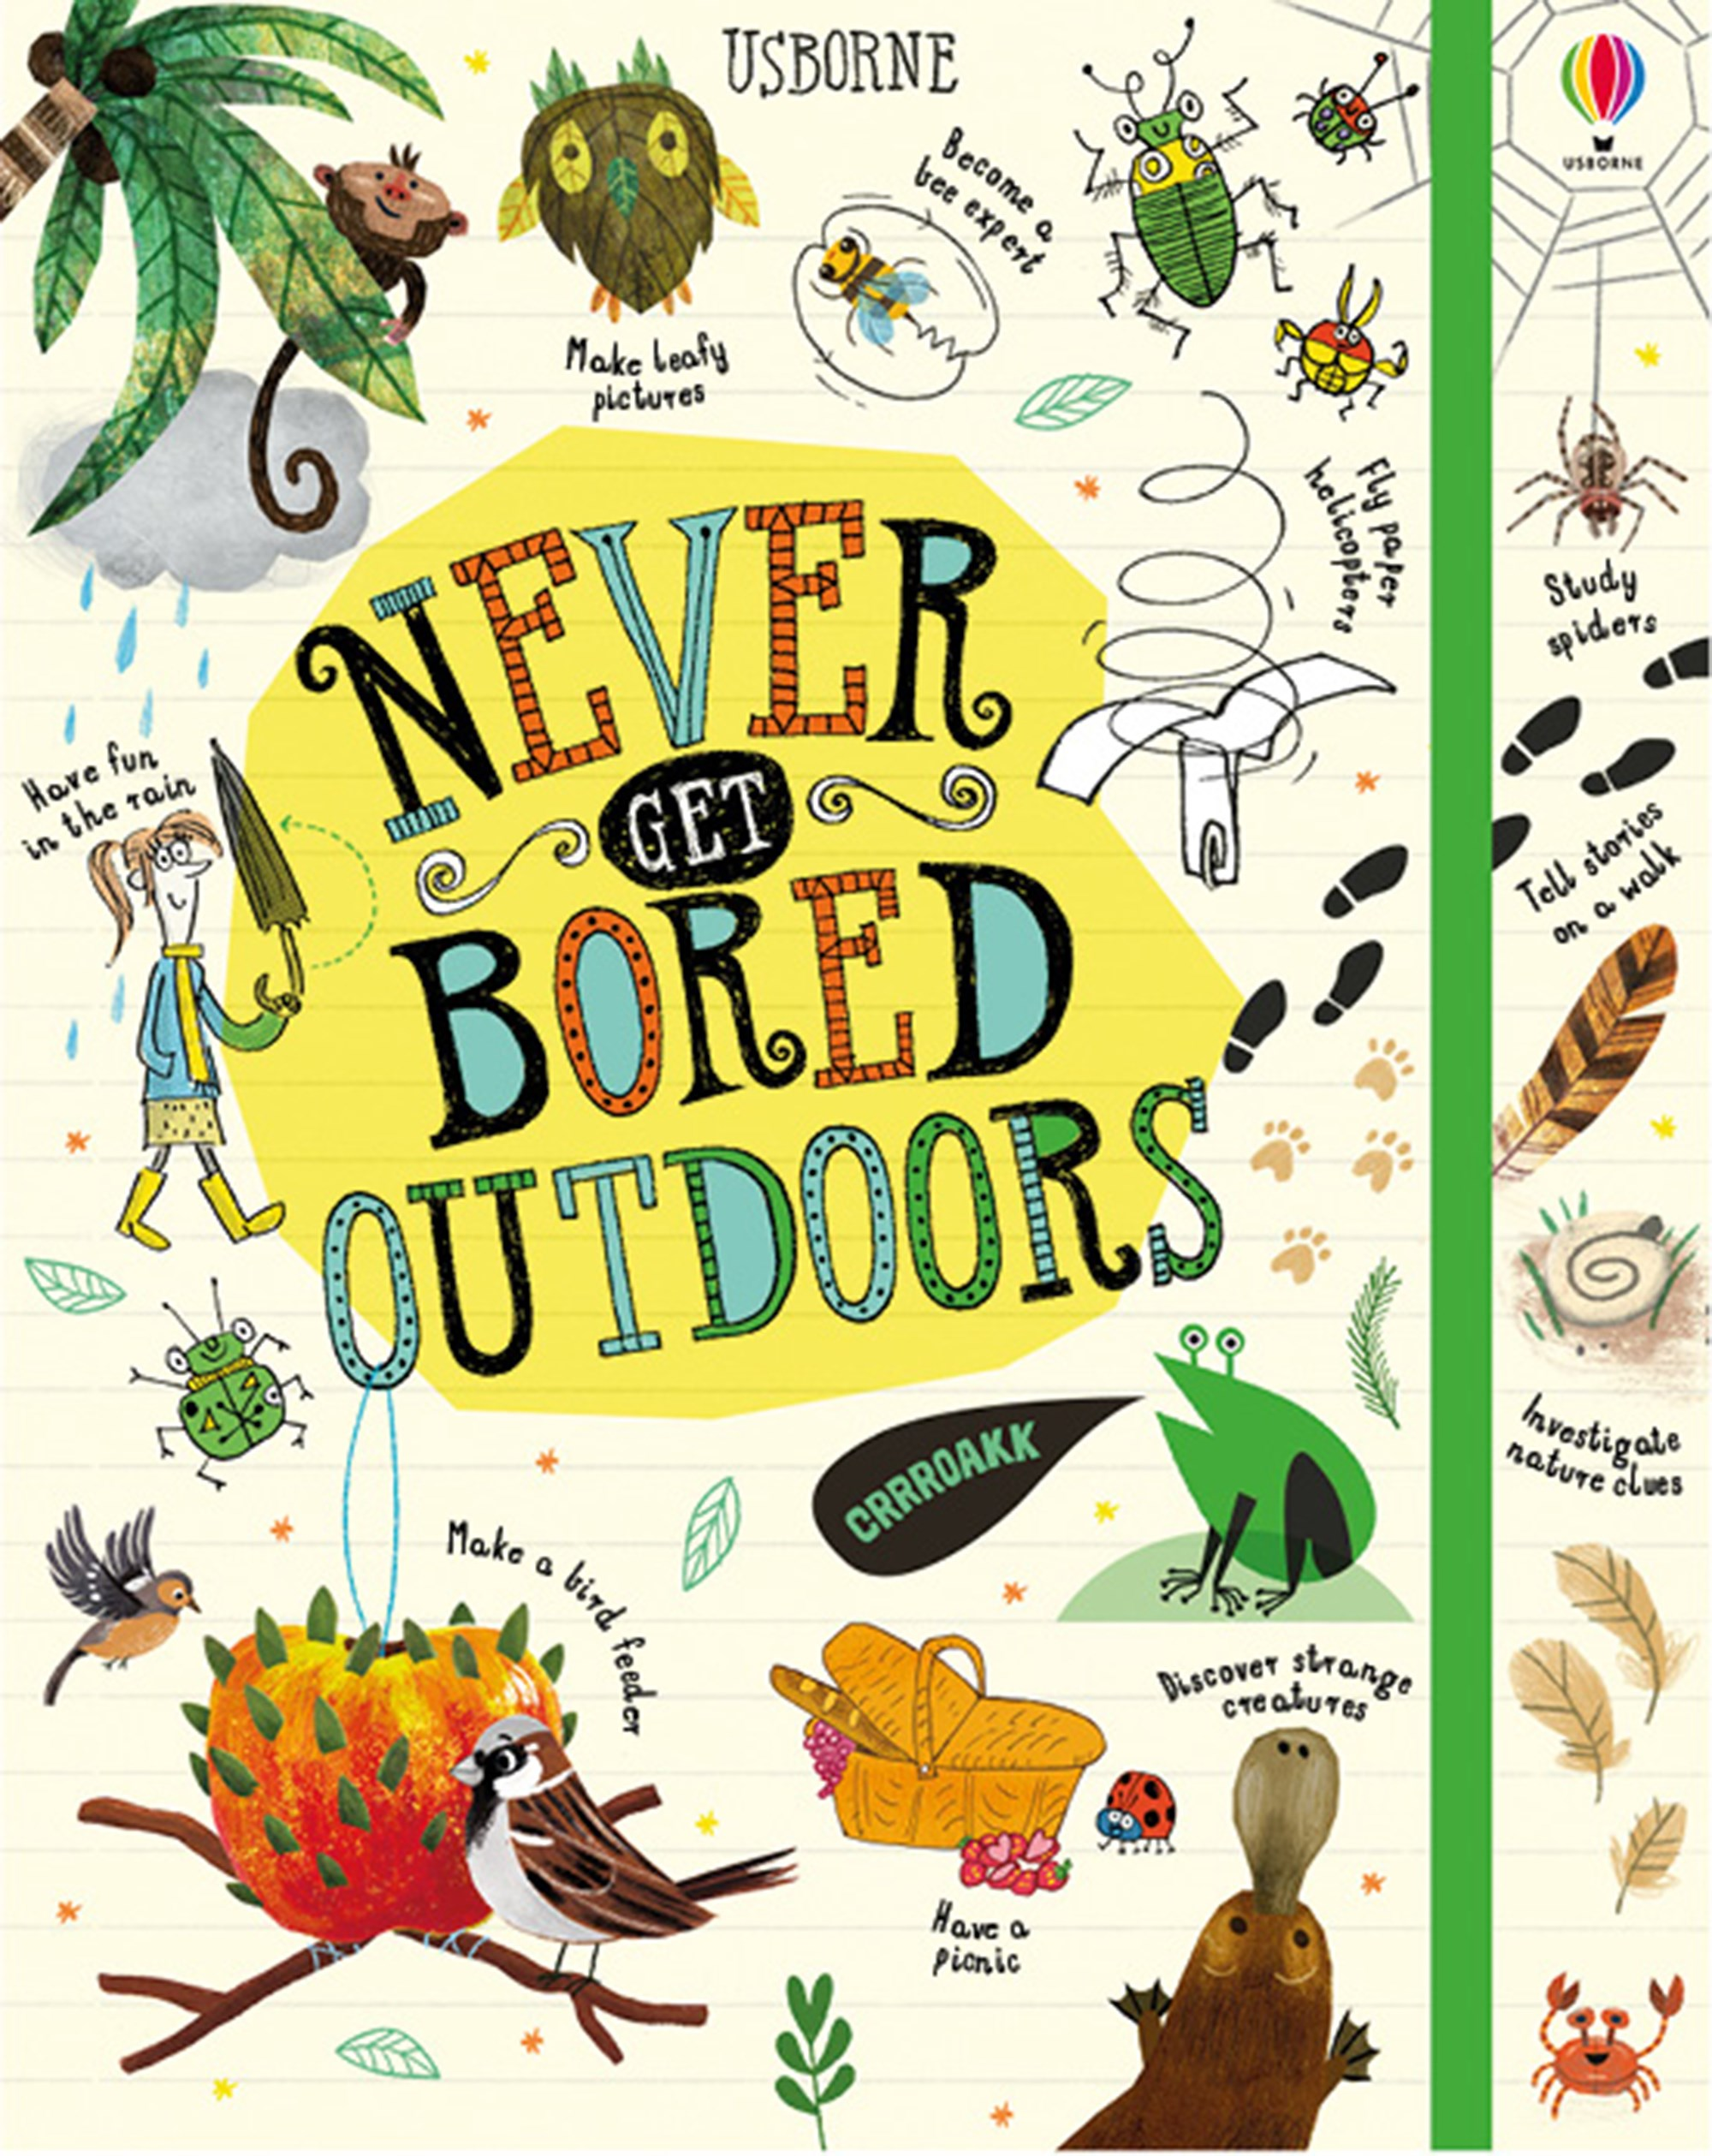 "Never get bored outdoors"" at Usborne Children's Books"